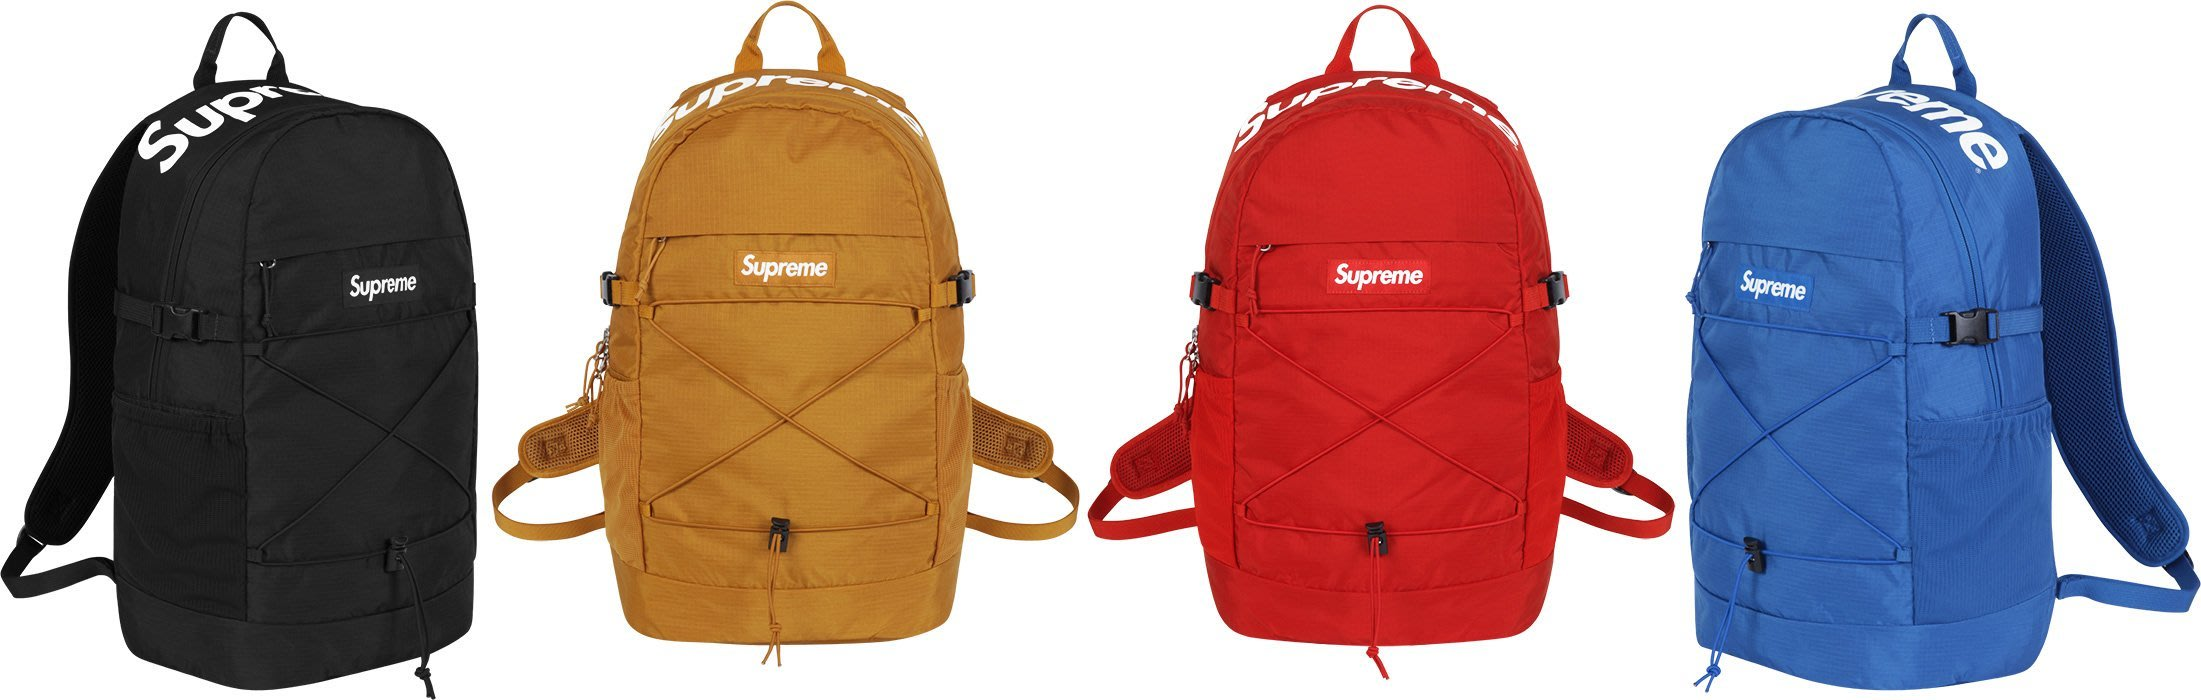 7fbc4bf70b2b 全新商品SUPREME Denier Cordura Backpack 40th 40代背包後背包防水尼龍材質